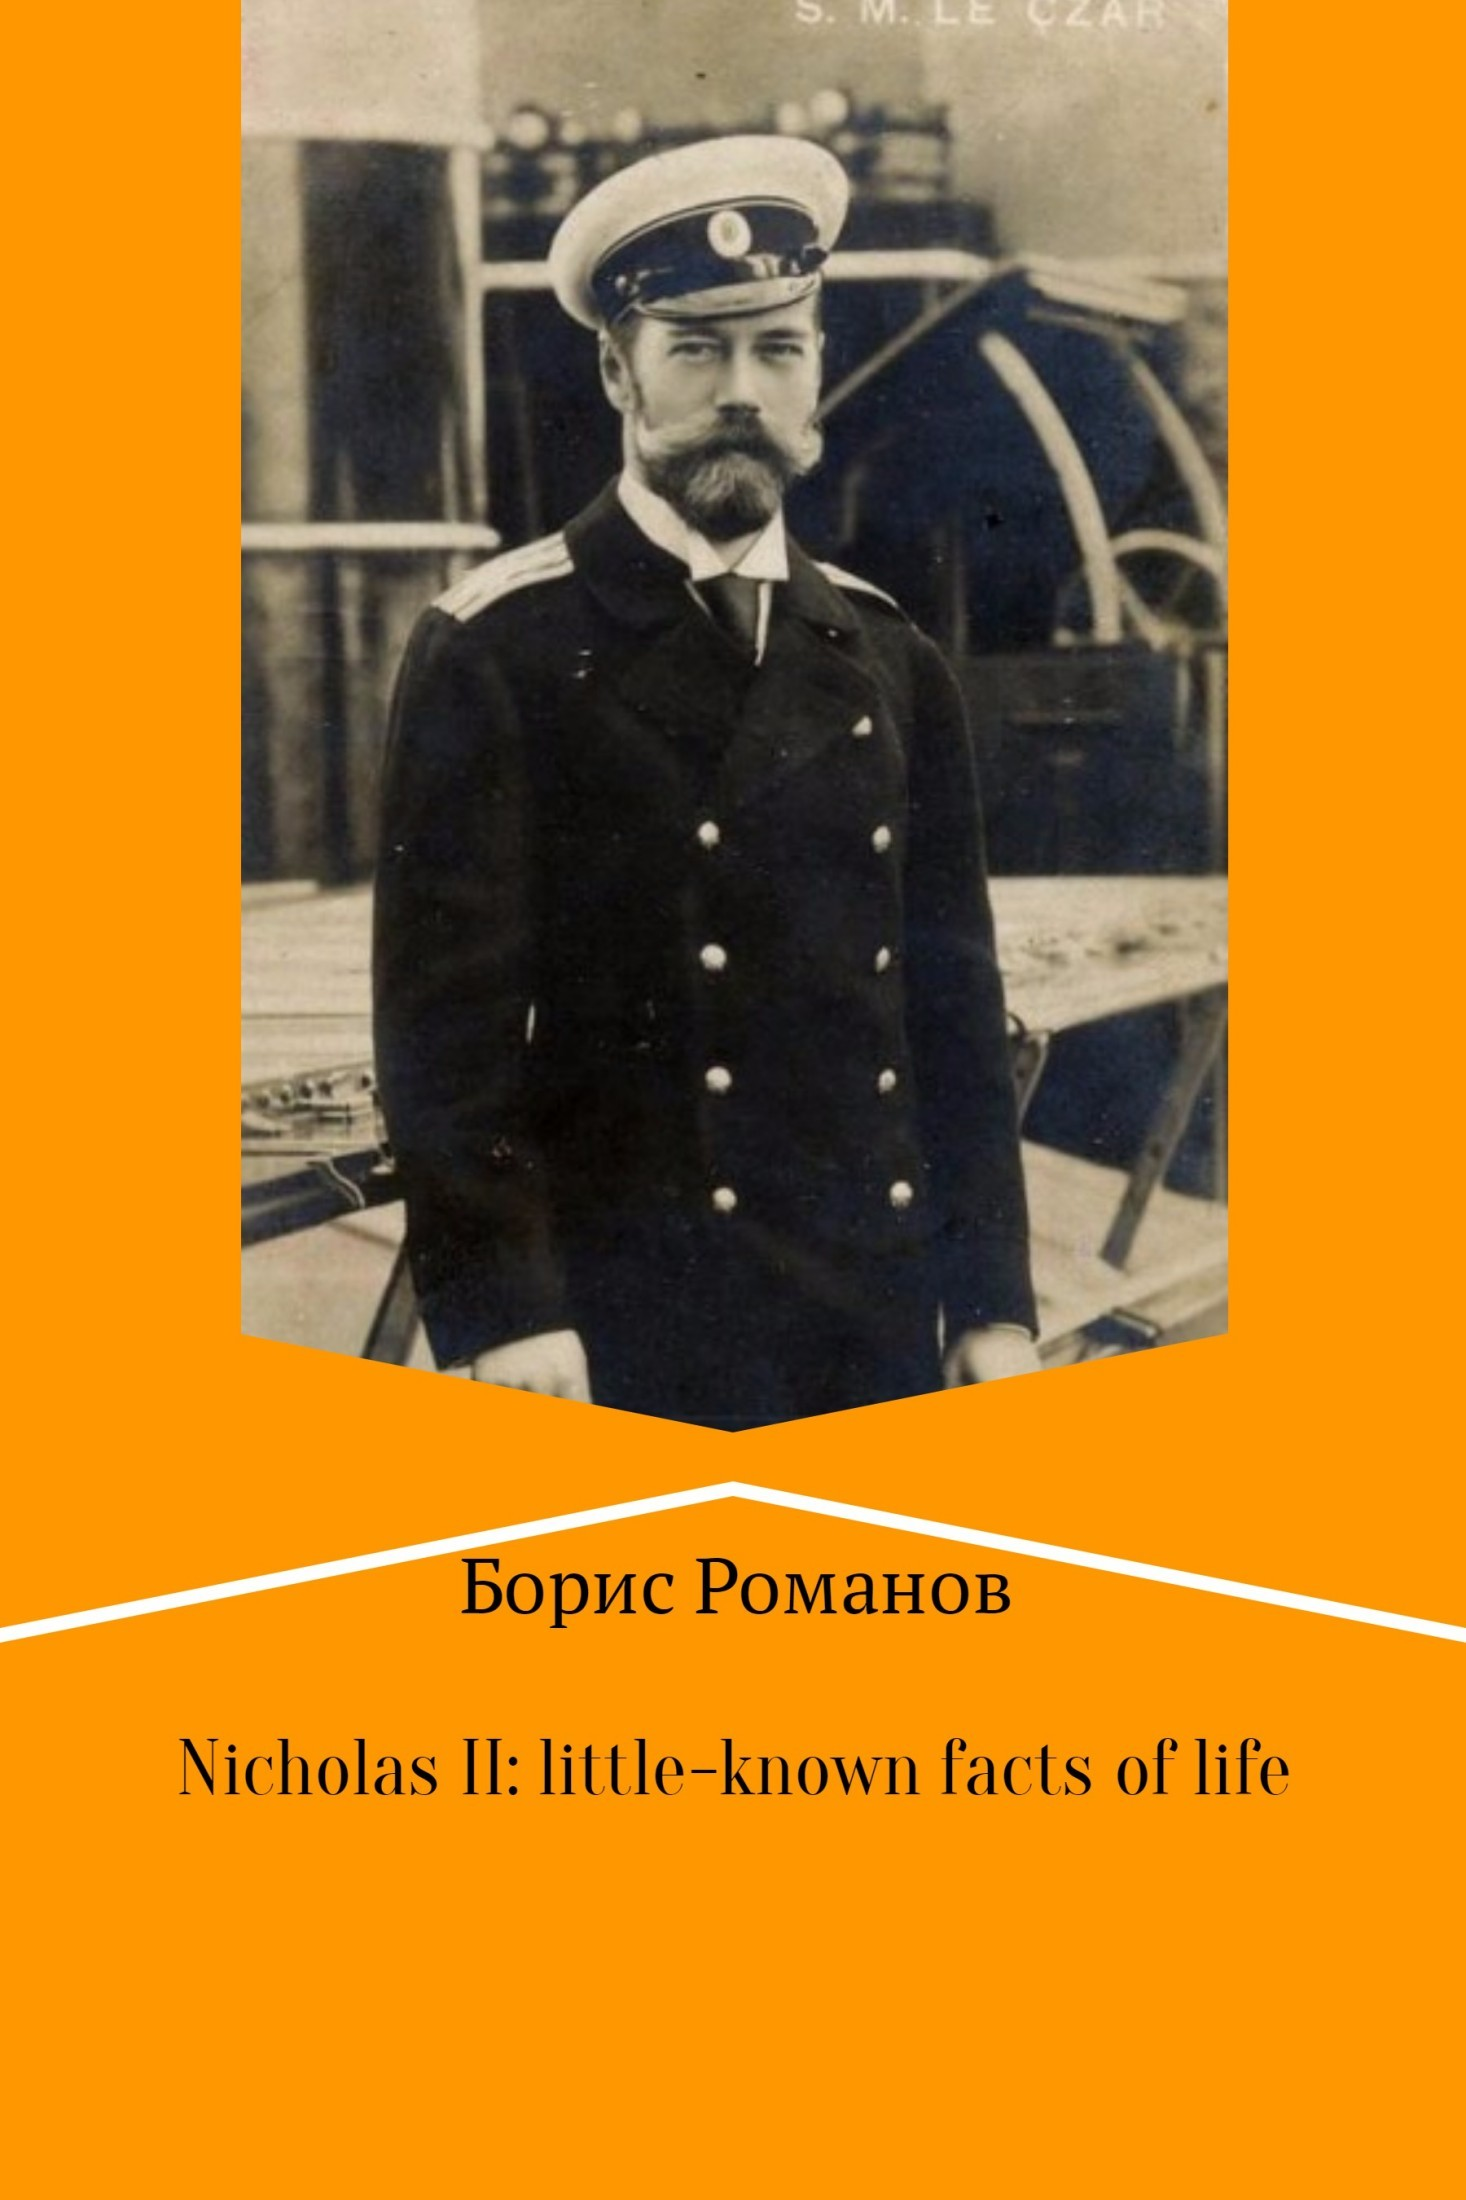 Борис Романов Nicholas II of Russia: little-known facts of life a new lease of death